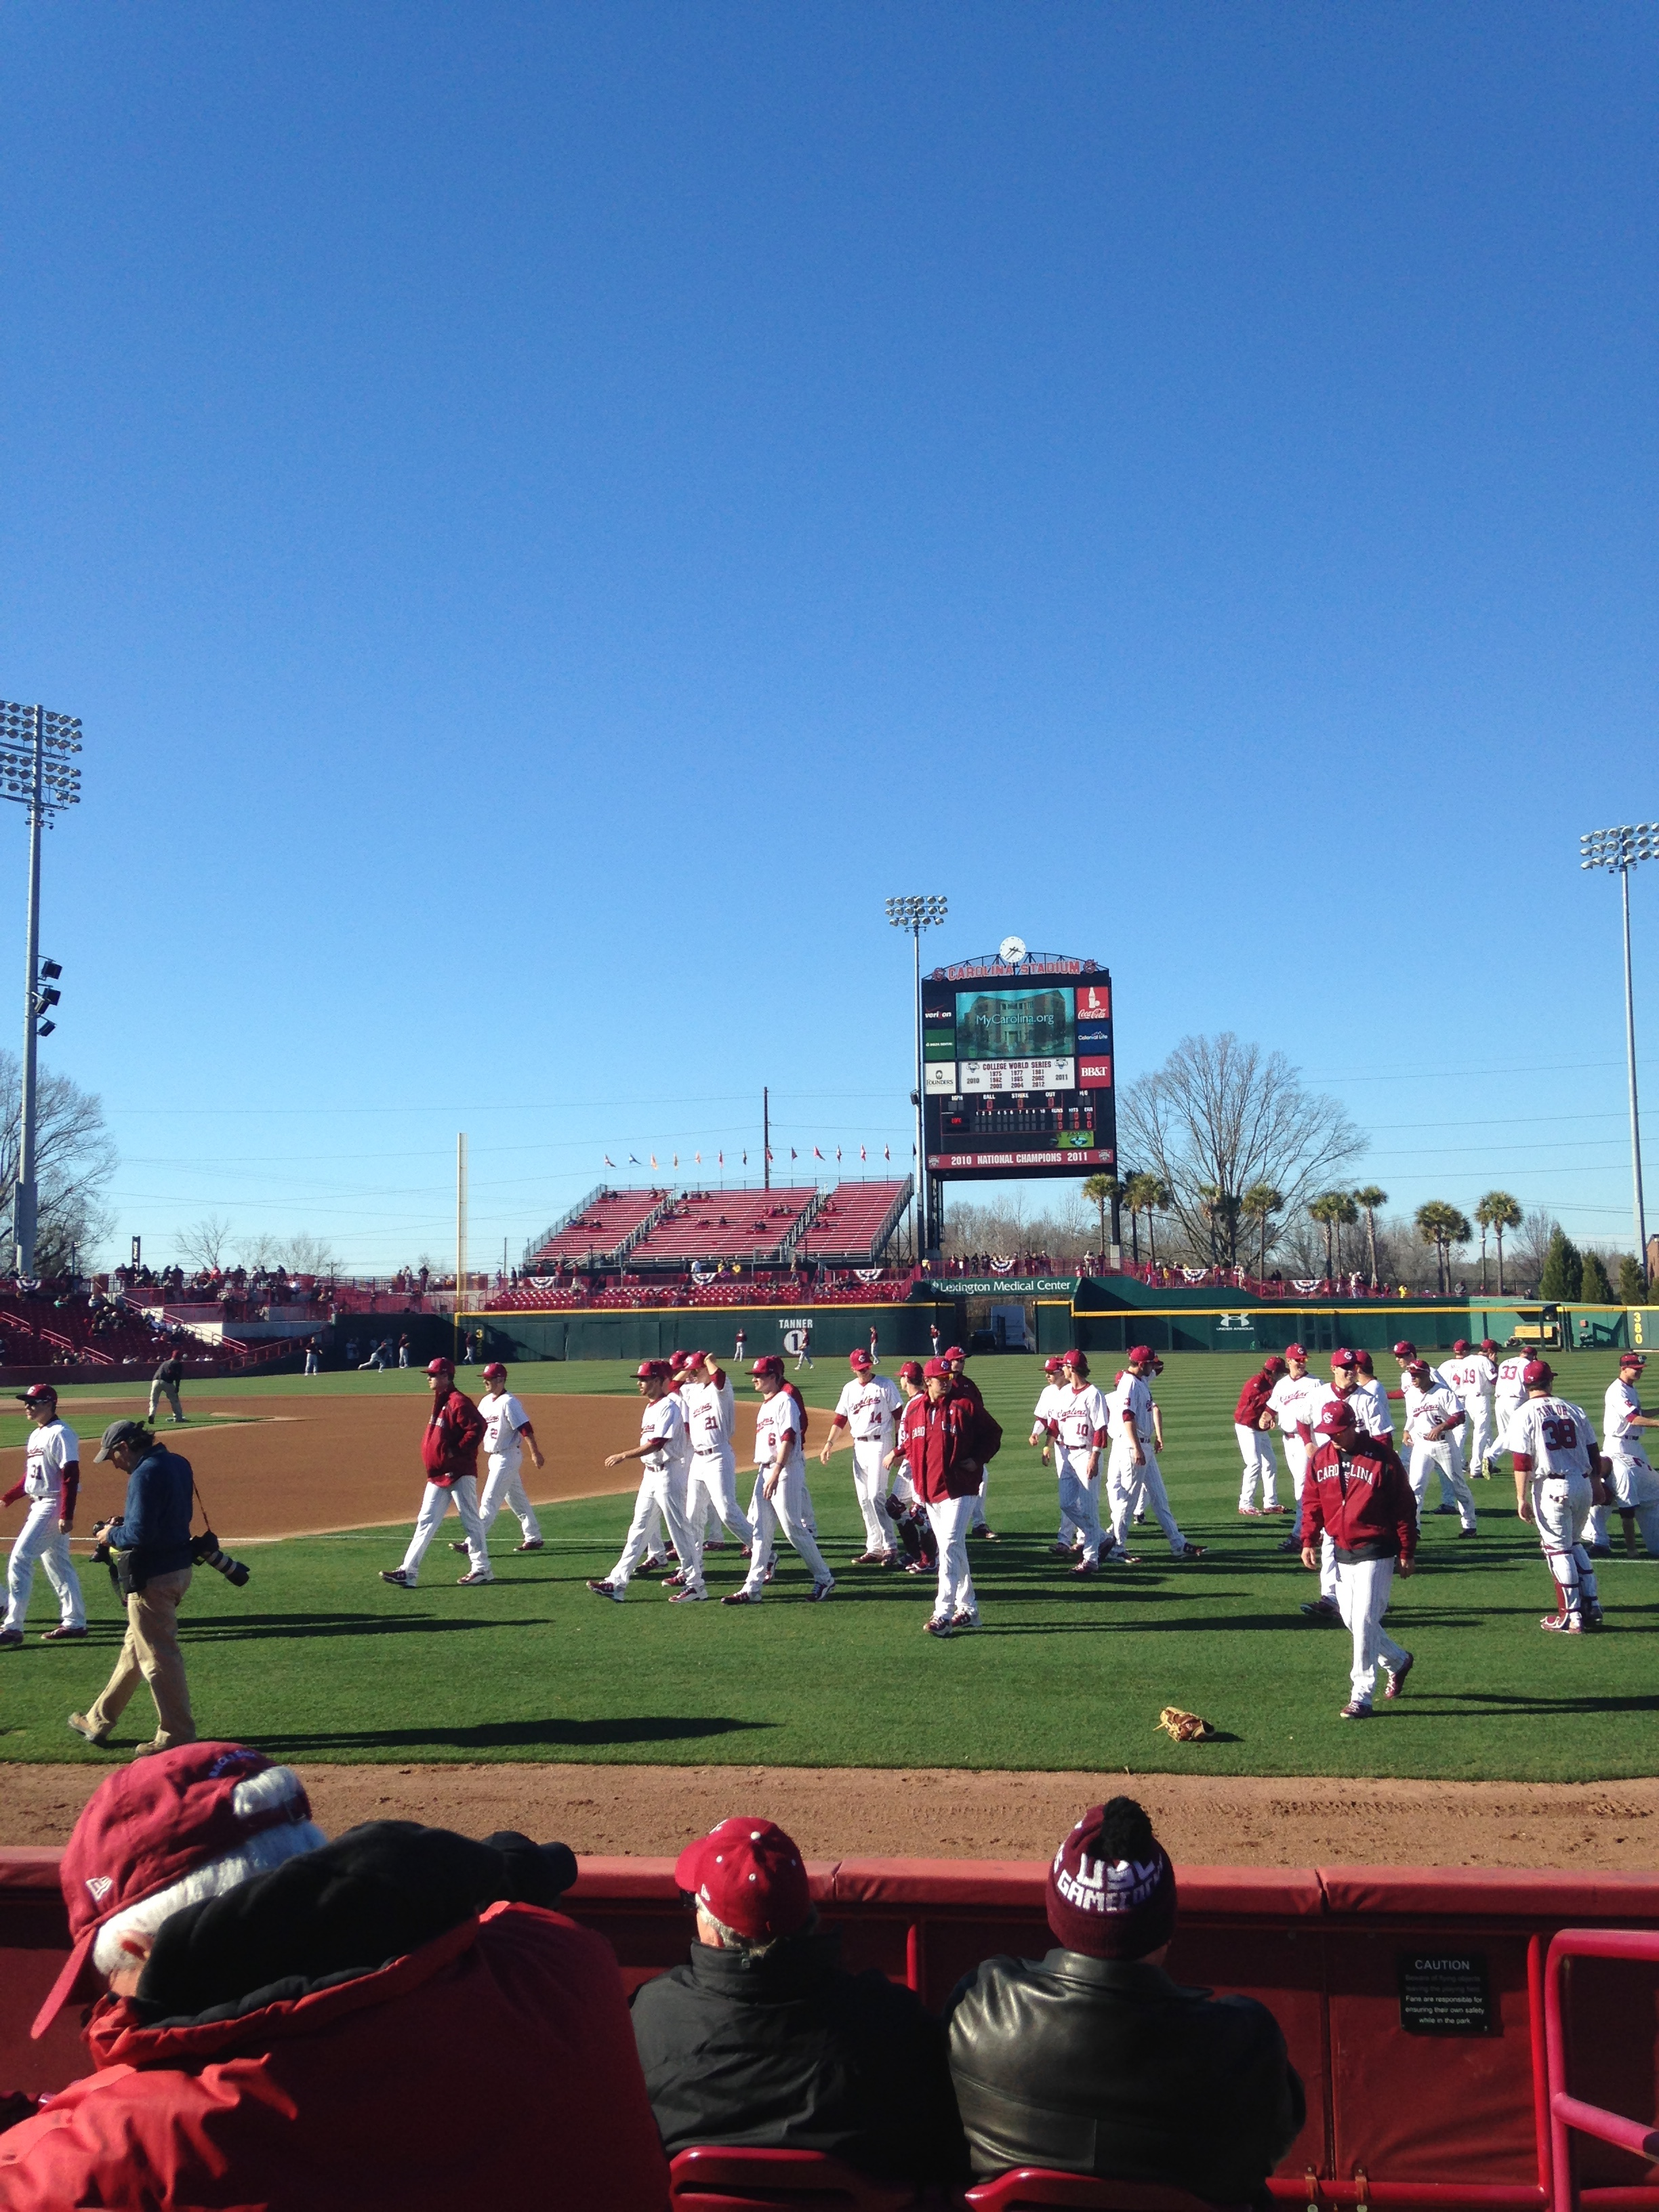 A beautiful afternoon for baseball in Columbia, SC